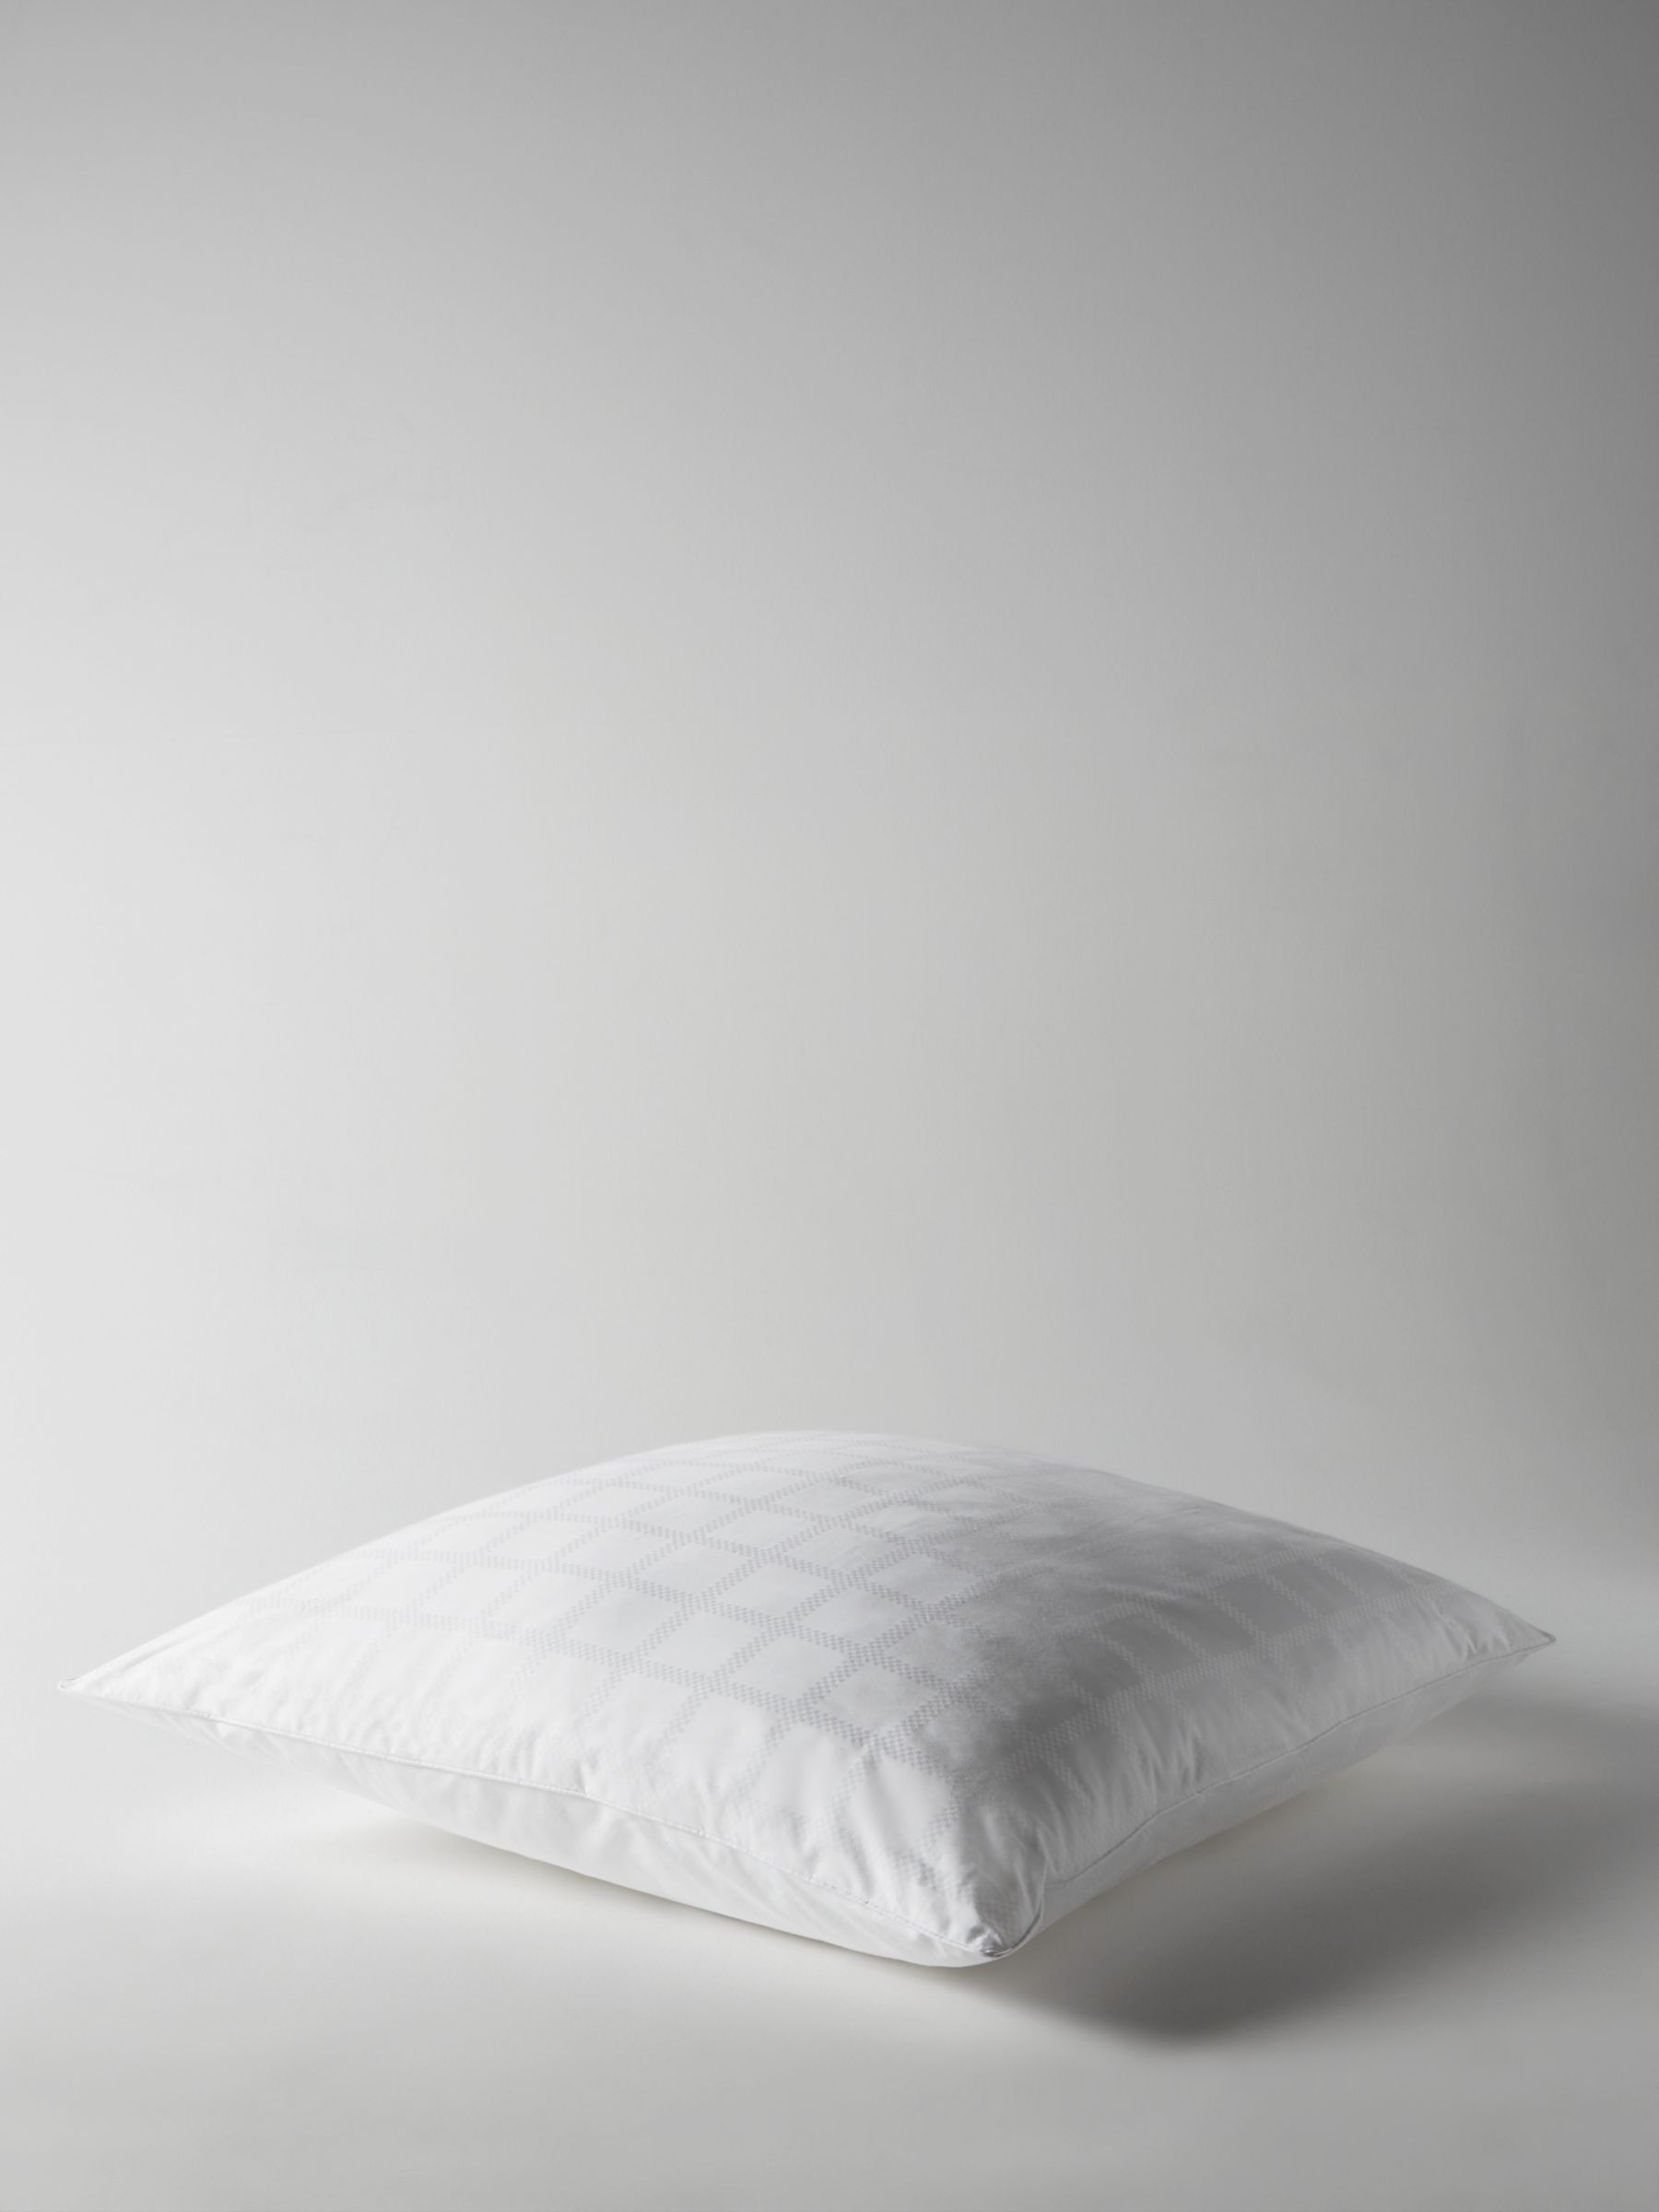 John Lewis & Partners Specialist Synthetic Active Anti-Allergy Square Pillow with Plant-Based Treatment, Firm